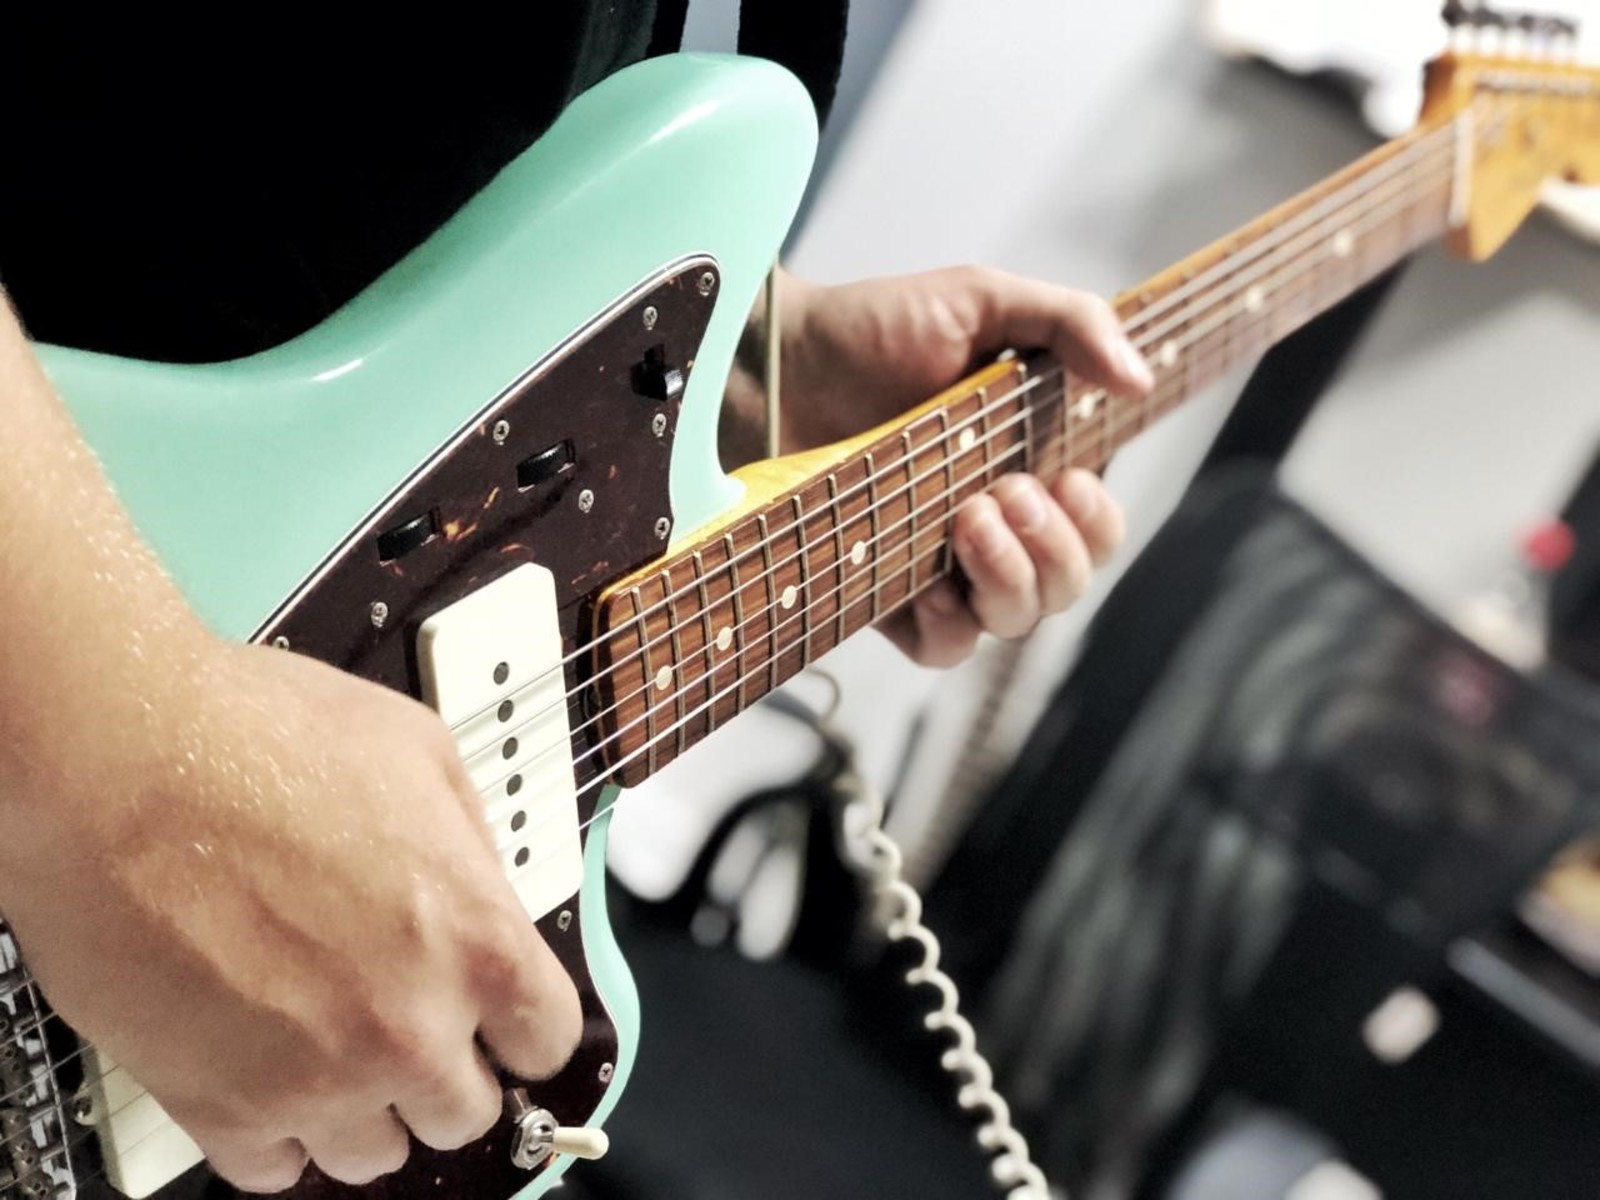 Photo of Fender Jazzmaster Electric Guitar in a studio, guitar, and closeup